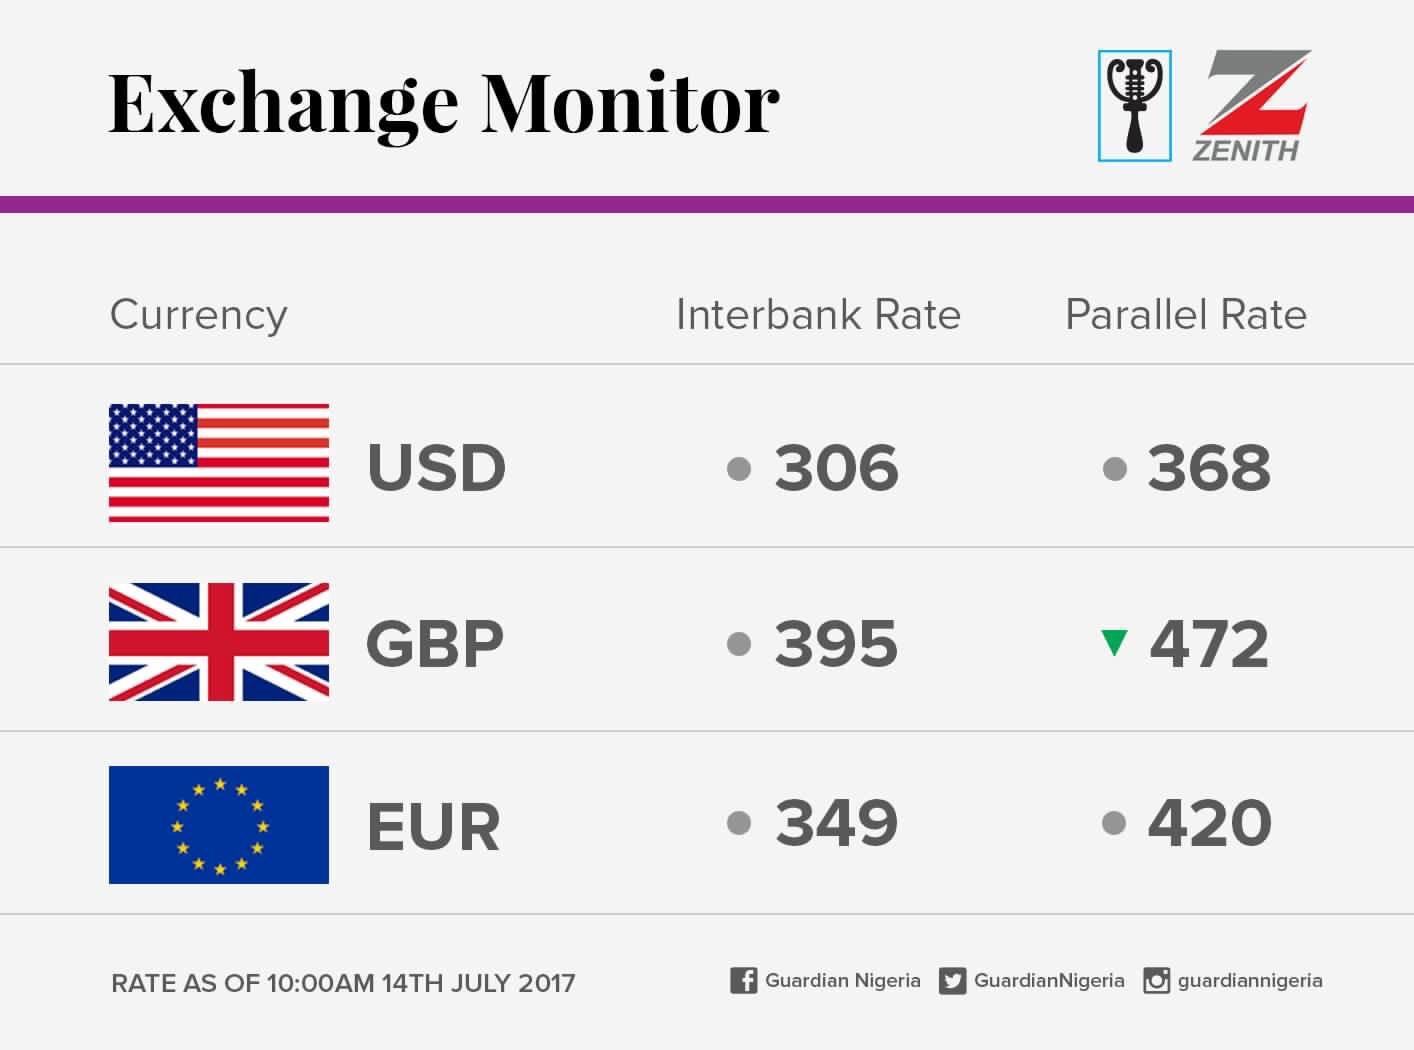 Exchange Rate For 14h July 2017